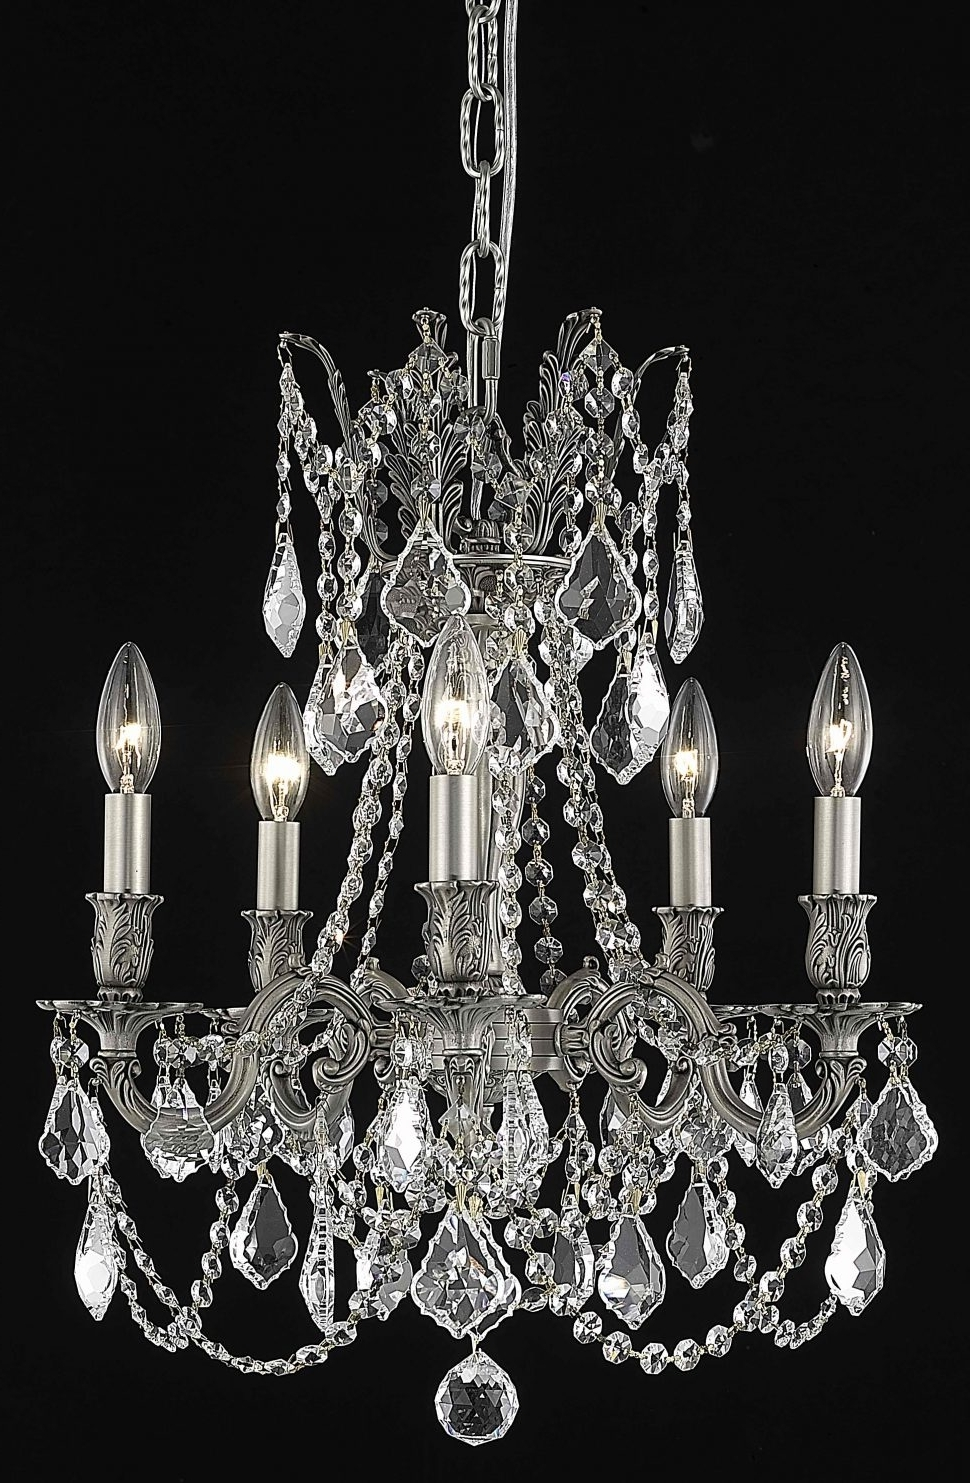 Best And Newest Chandeliers Design : Awesome Terrific Large Crystal Chandelier Big Throughout Cheap Big Chandeliers (View 3 of 20)